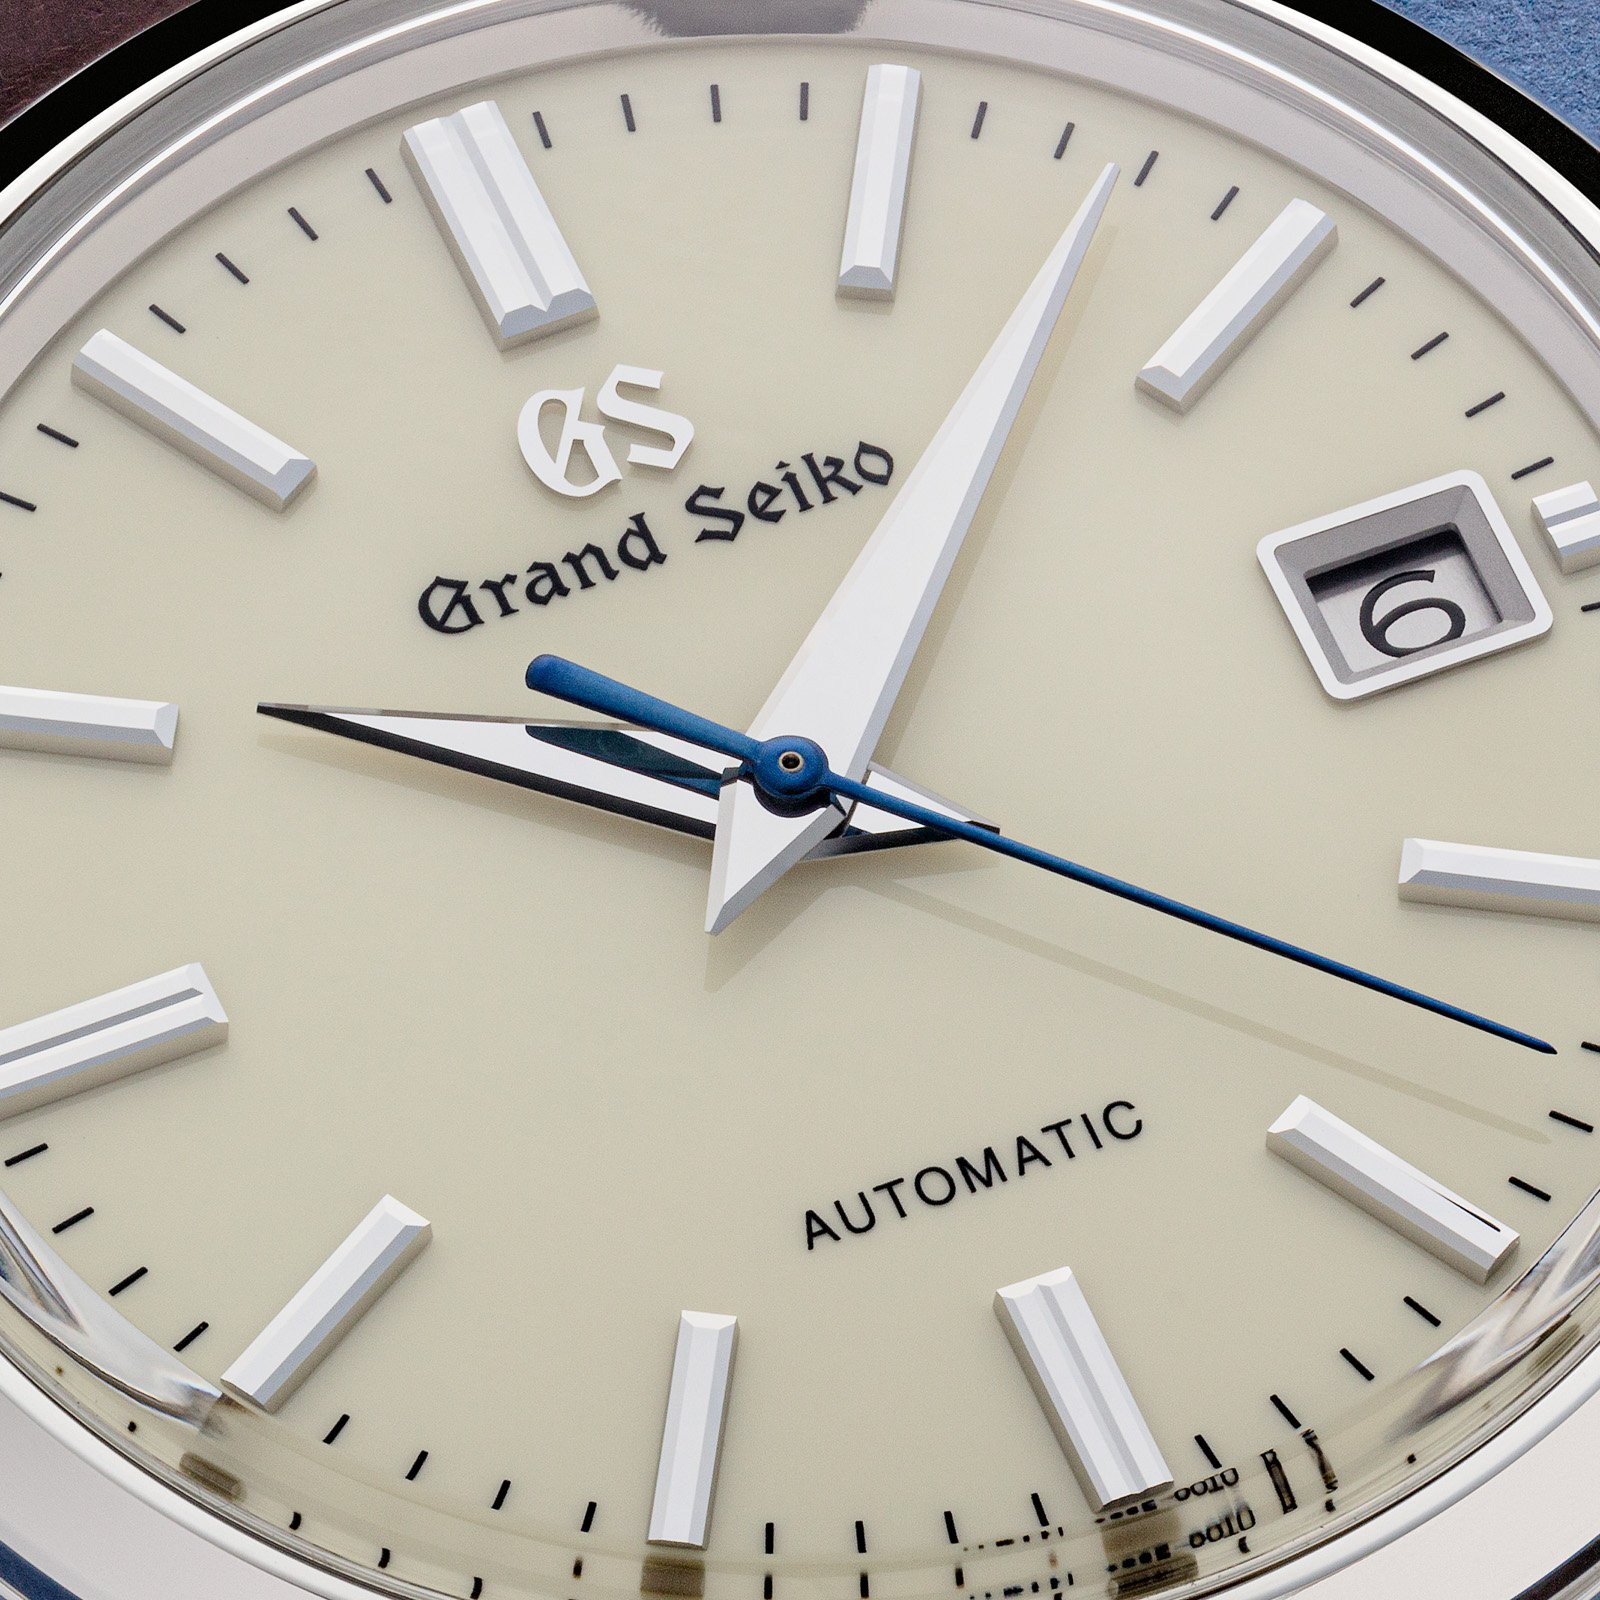 An ivory dial with silver tone markers and hands, and a blue second hand.